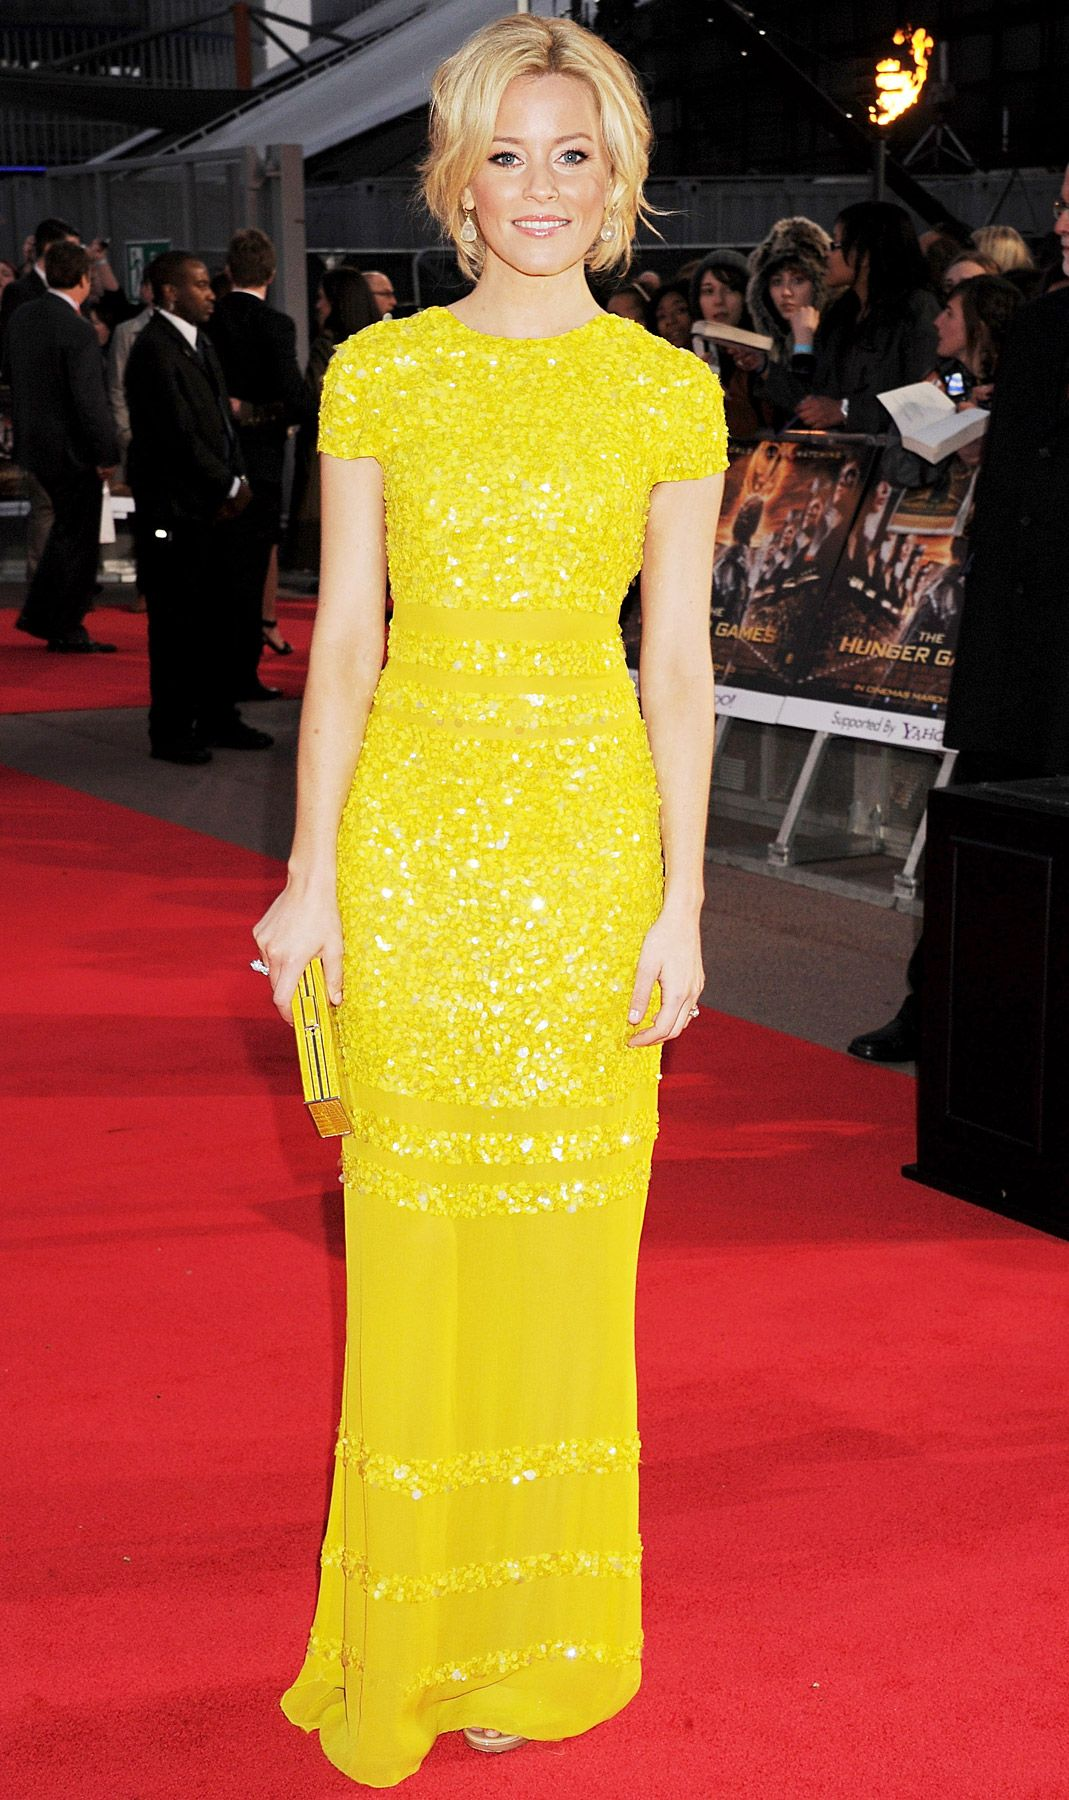 Elizabeth Banks in Bill Blass...so wishing we had pre-ordered this one!